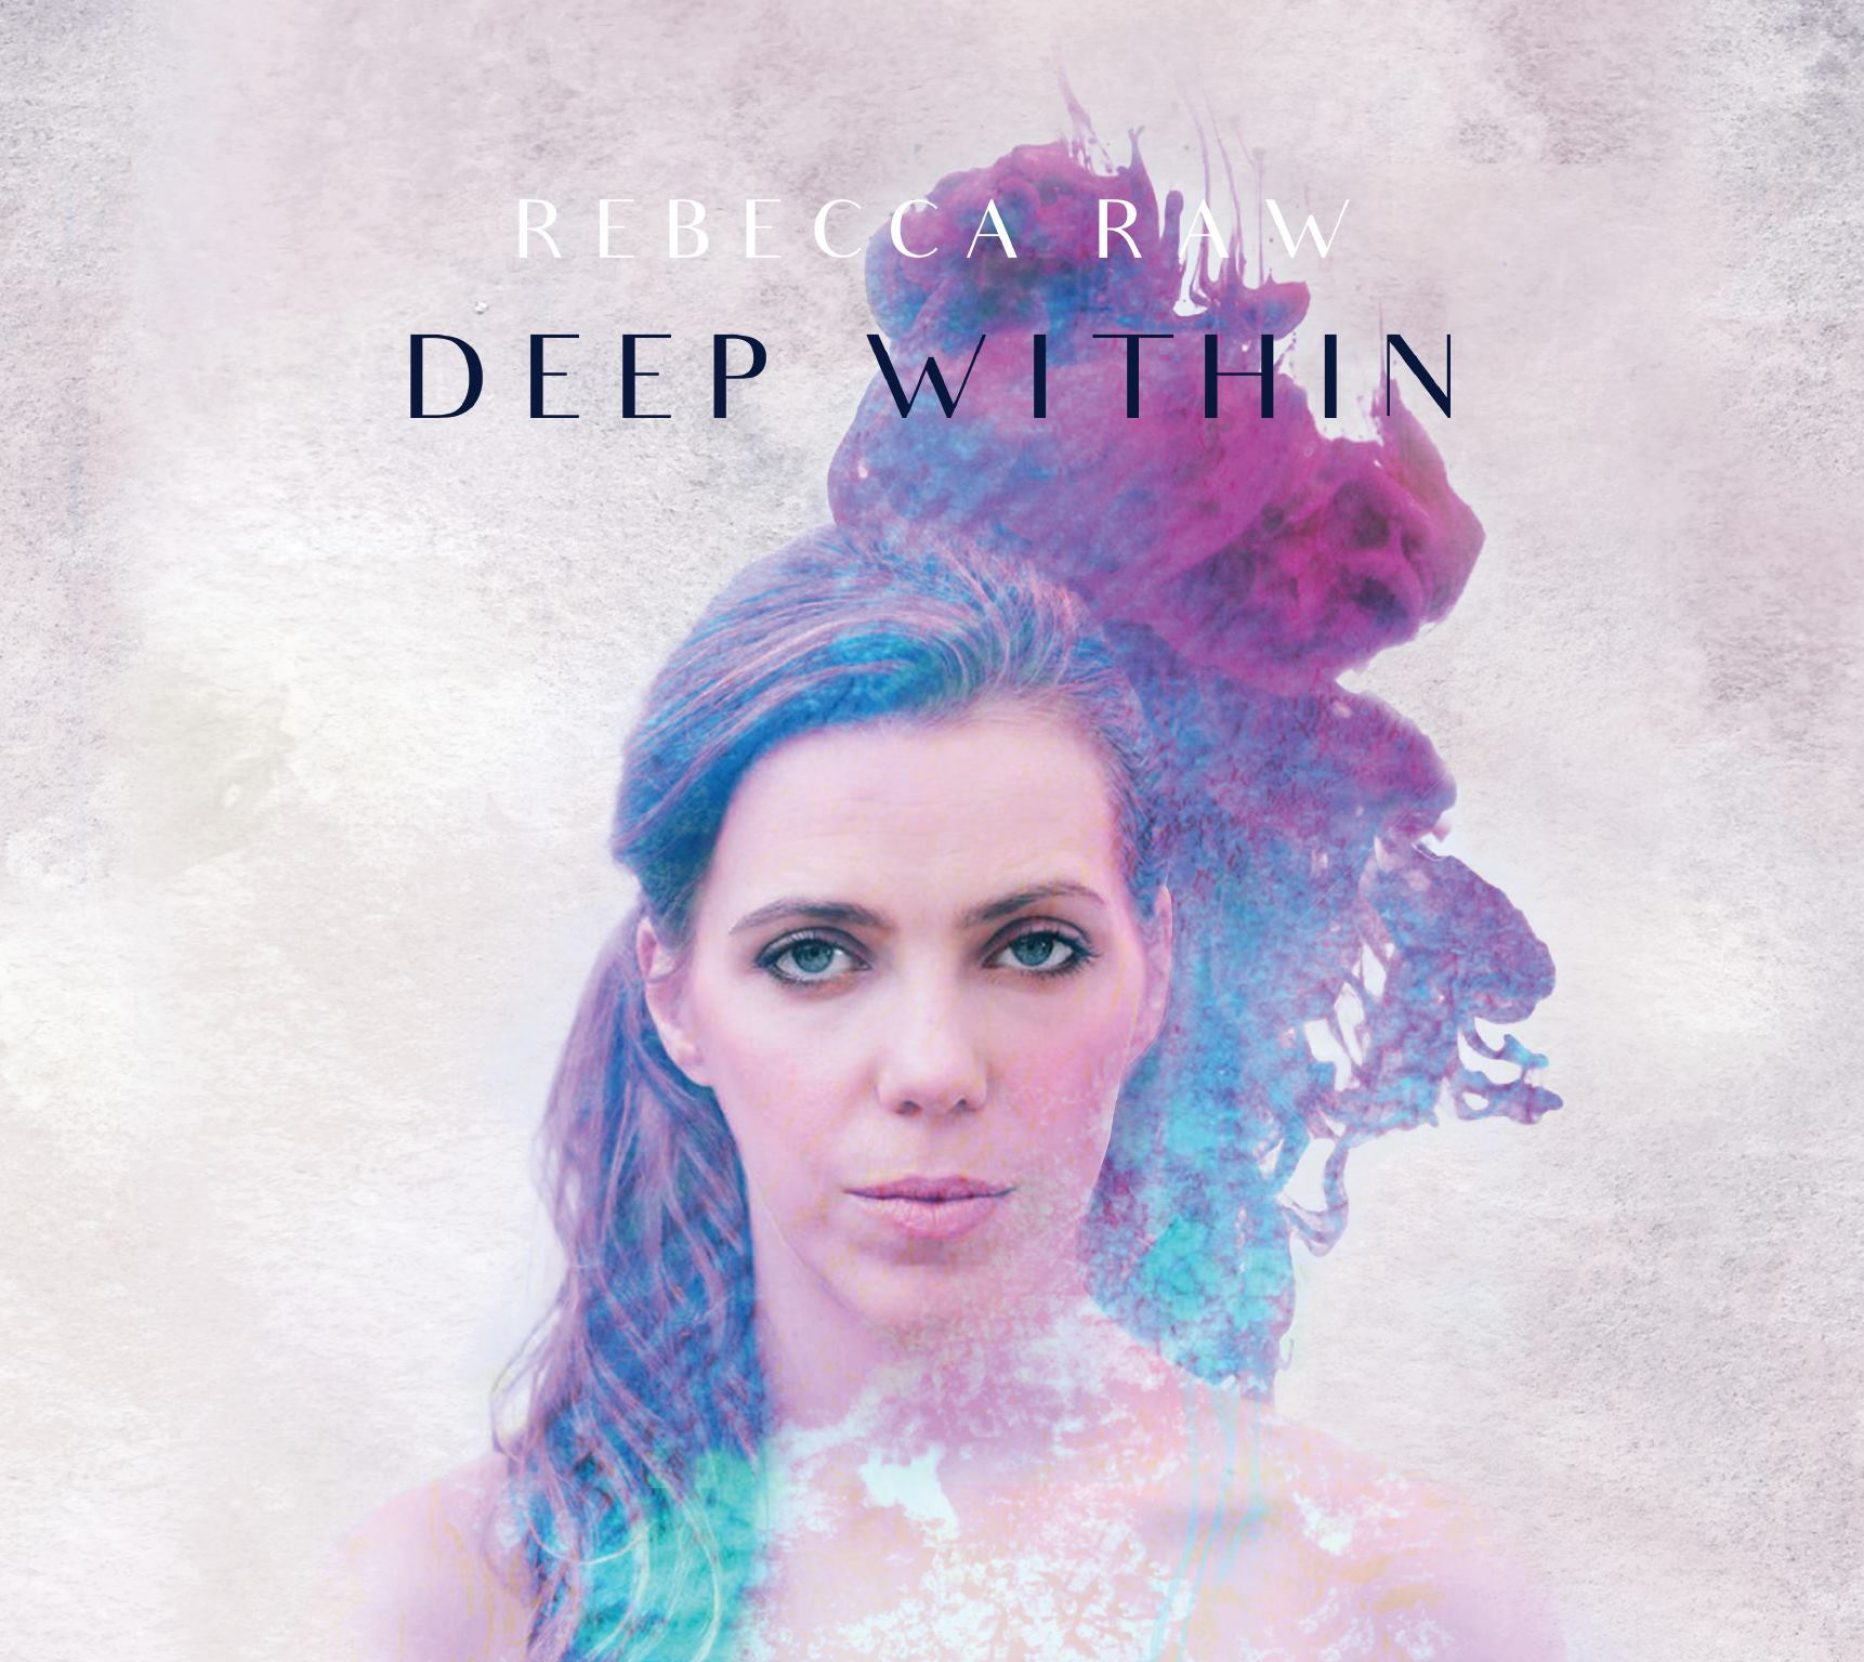 Image result for rebecca raw deep within